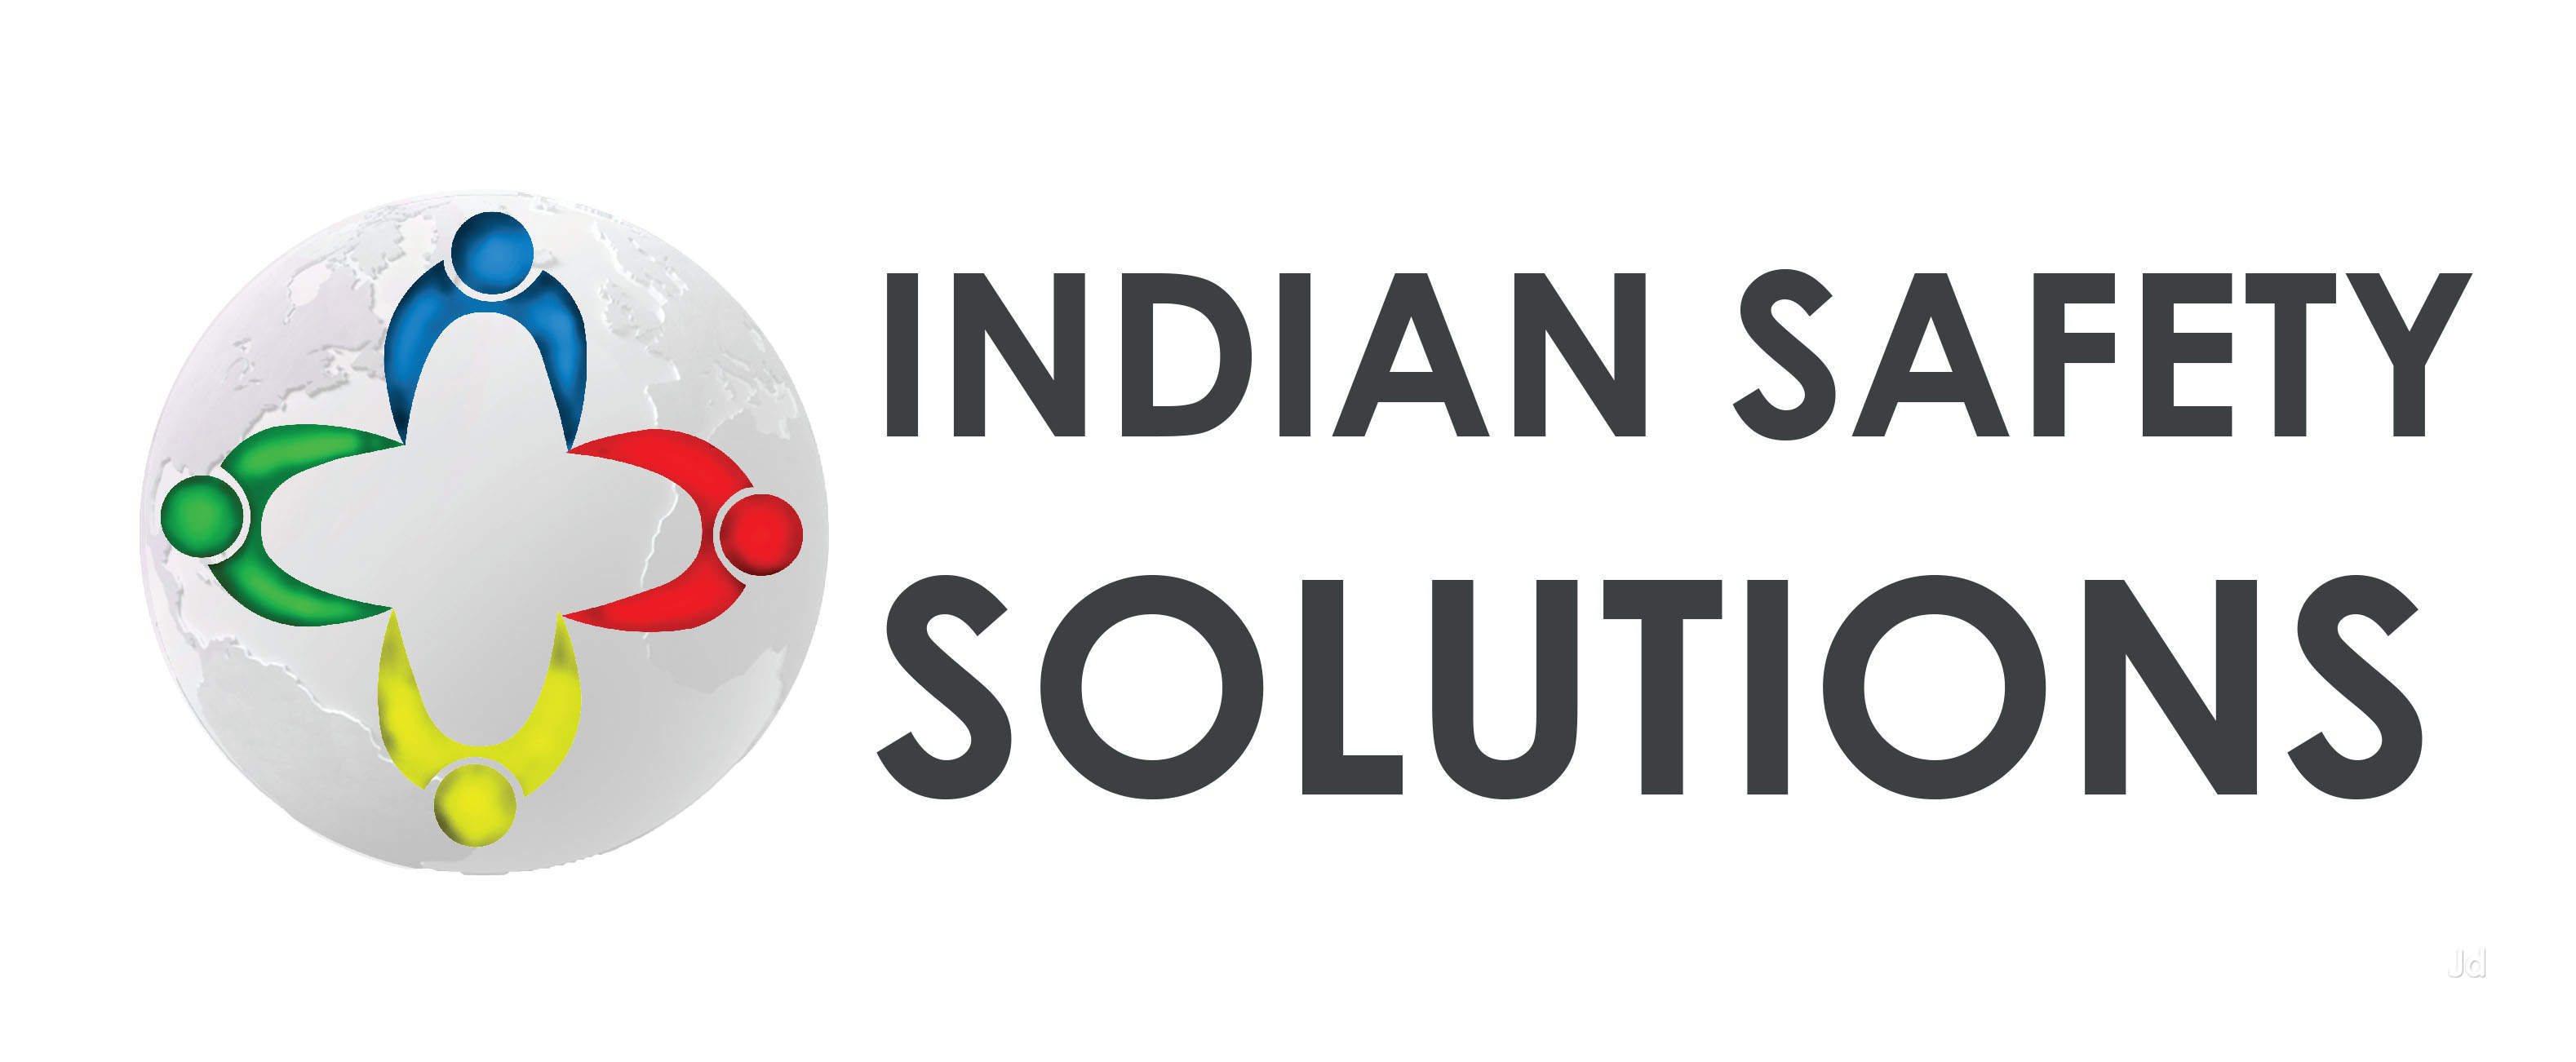 Indian Safety Solutions 2